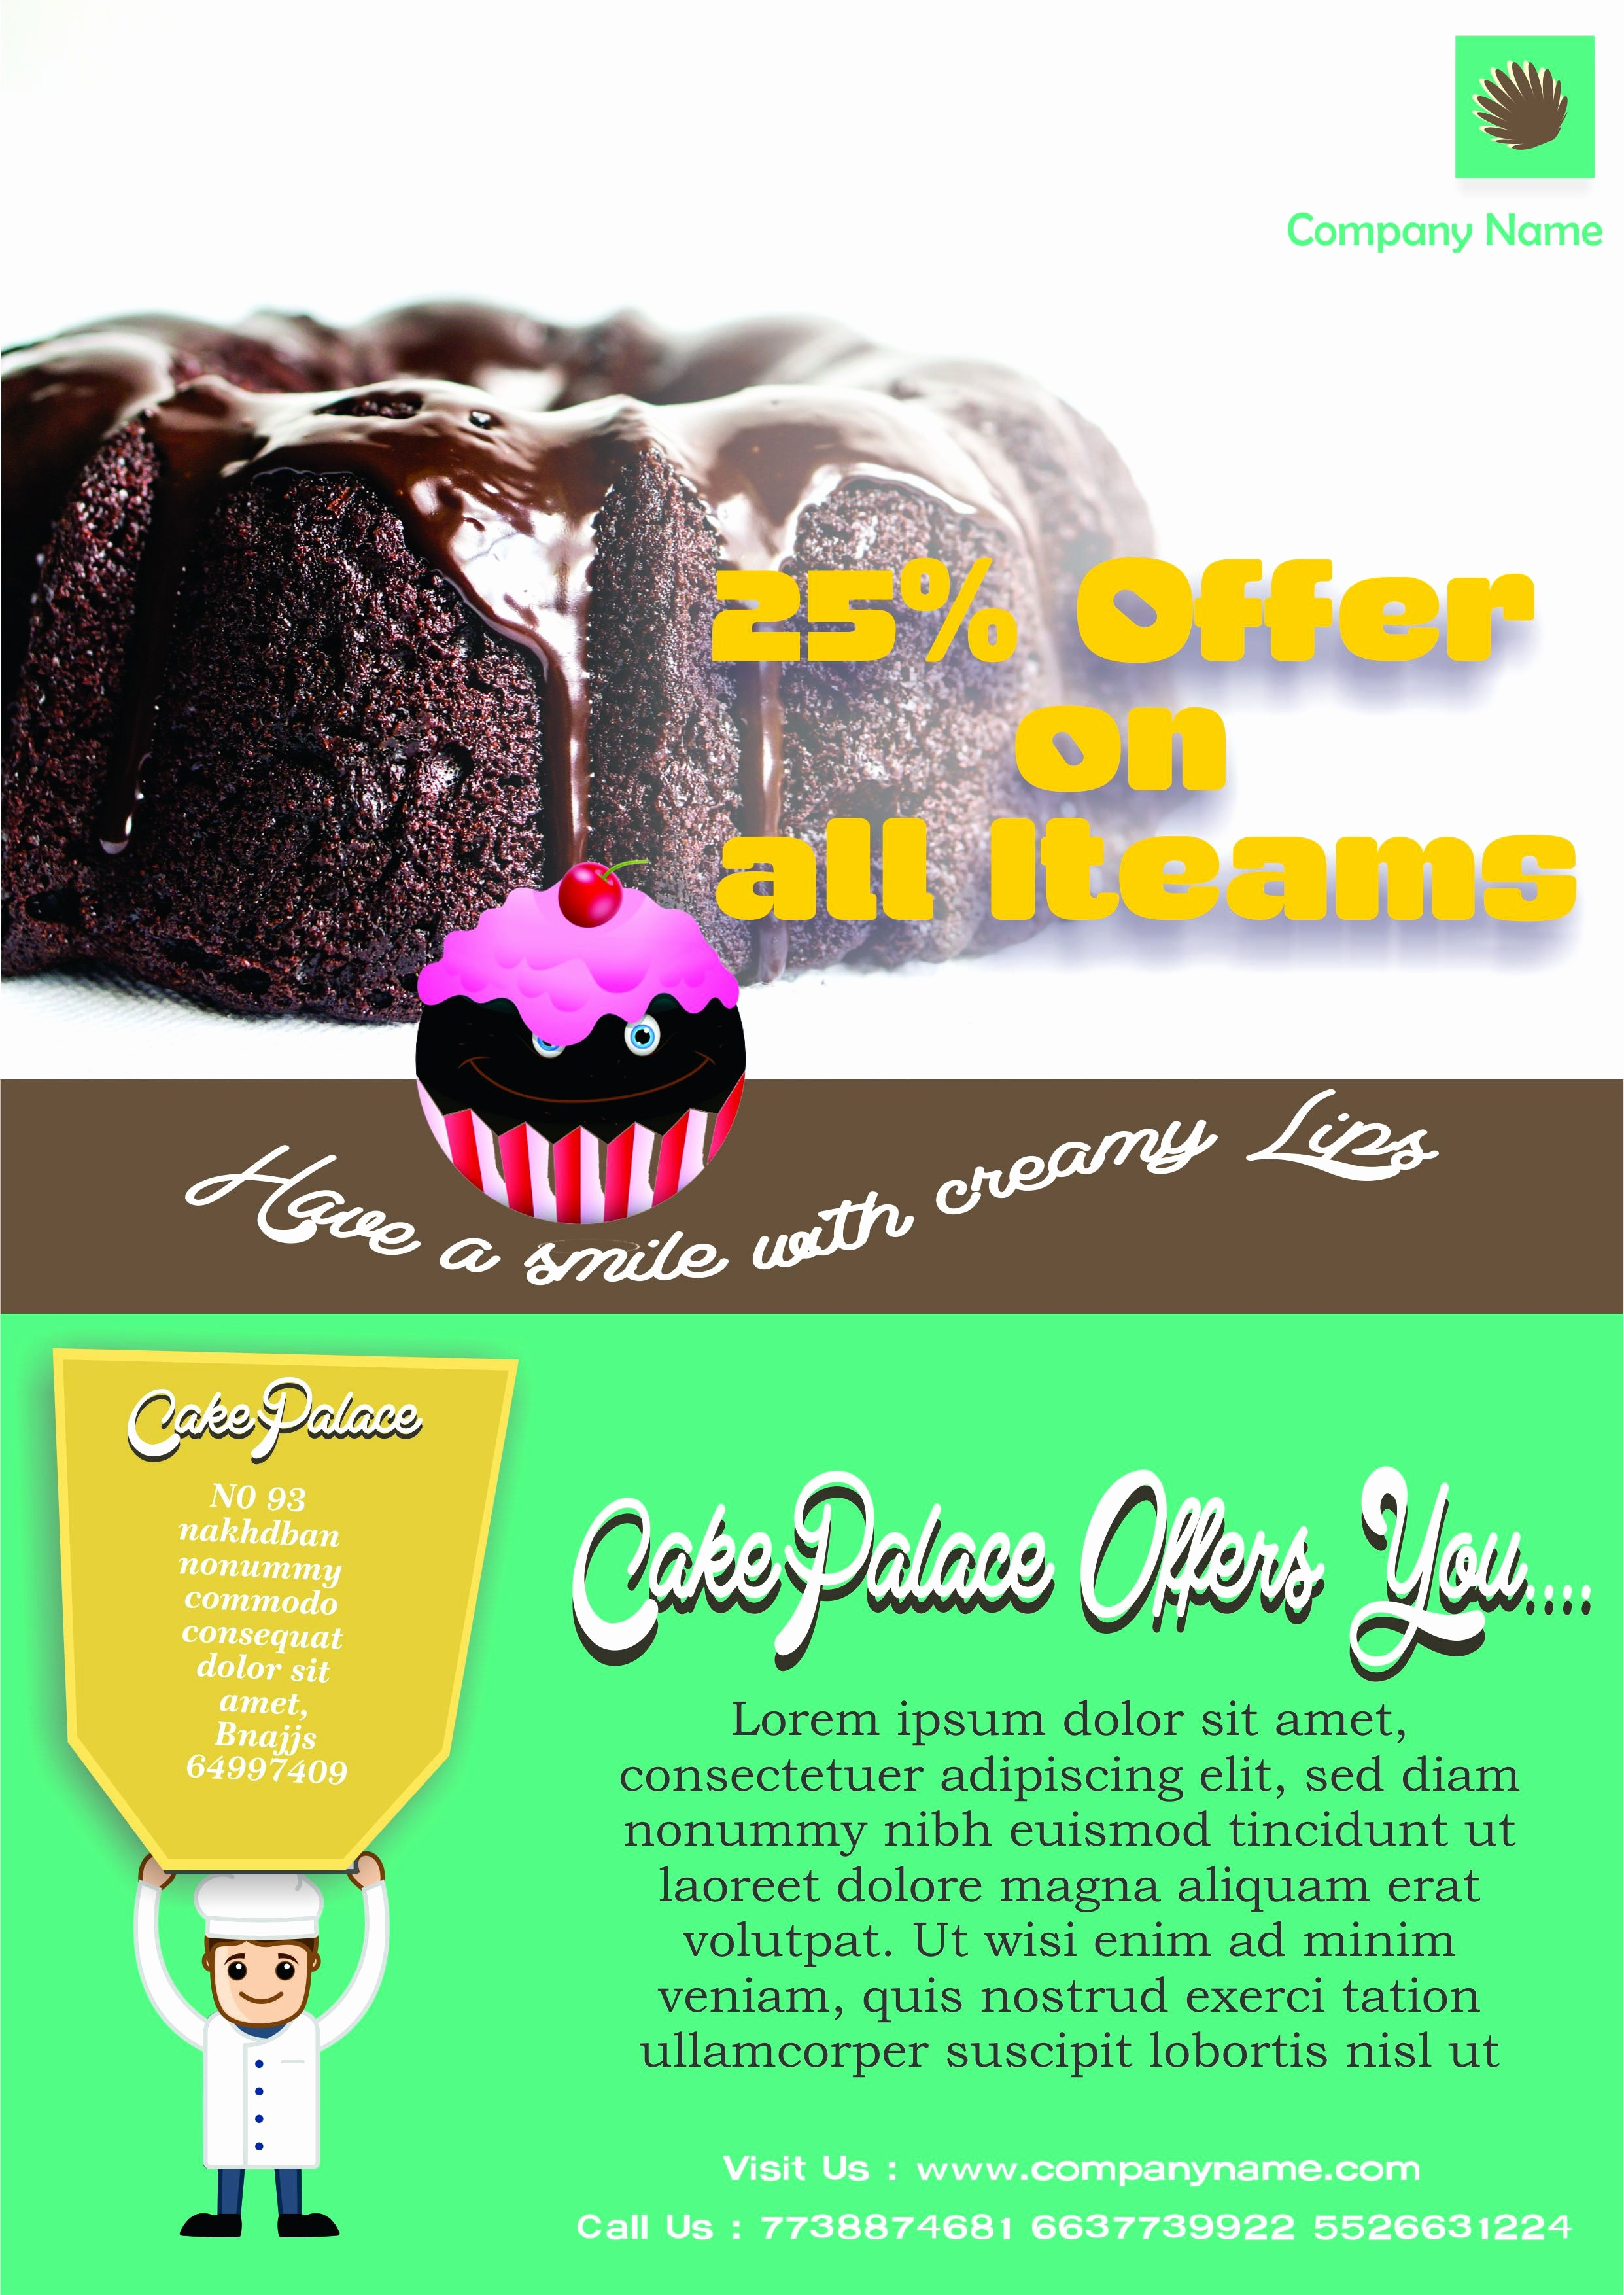 Bake Sale Flyer Template Word Lovely Engaging Free Bake Sale Flyer Templates for Fundraising